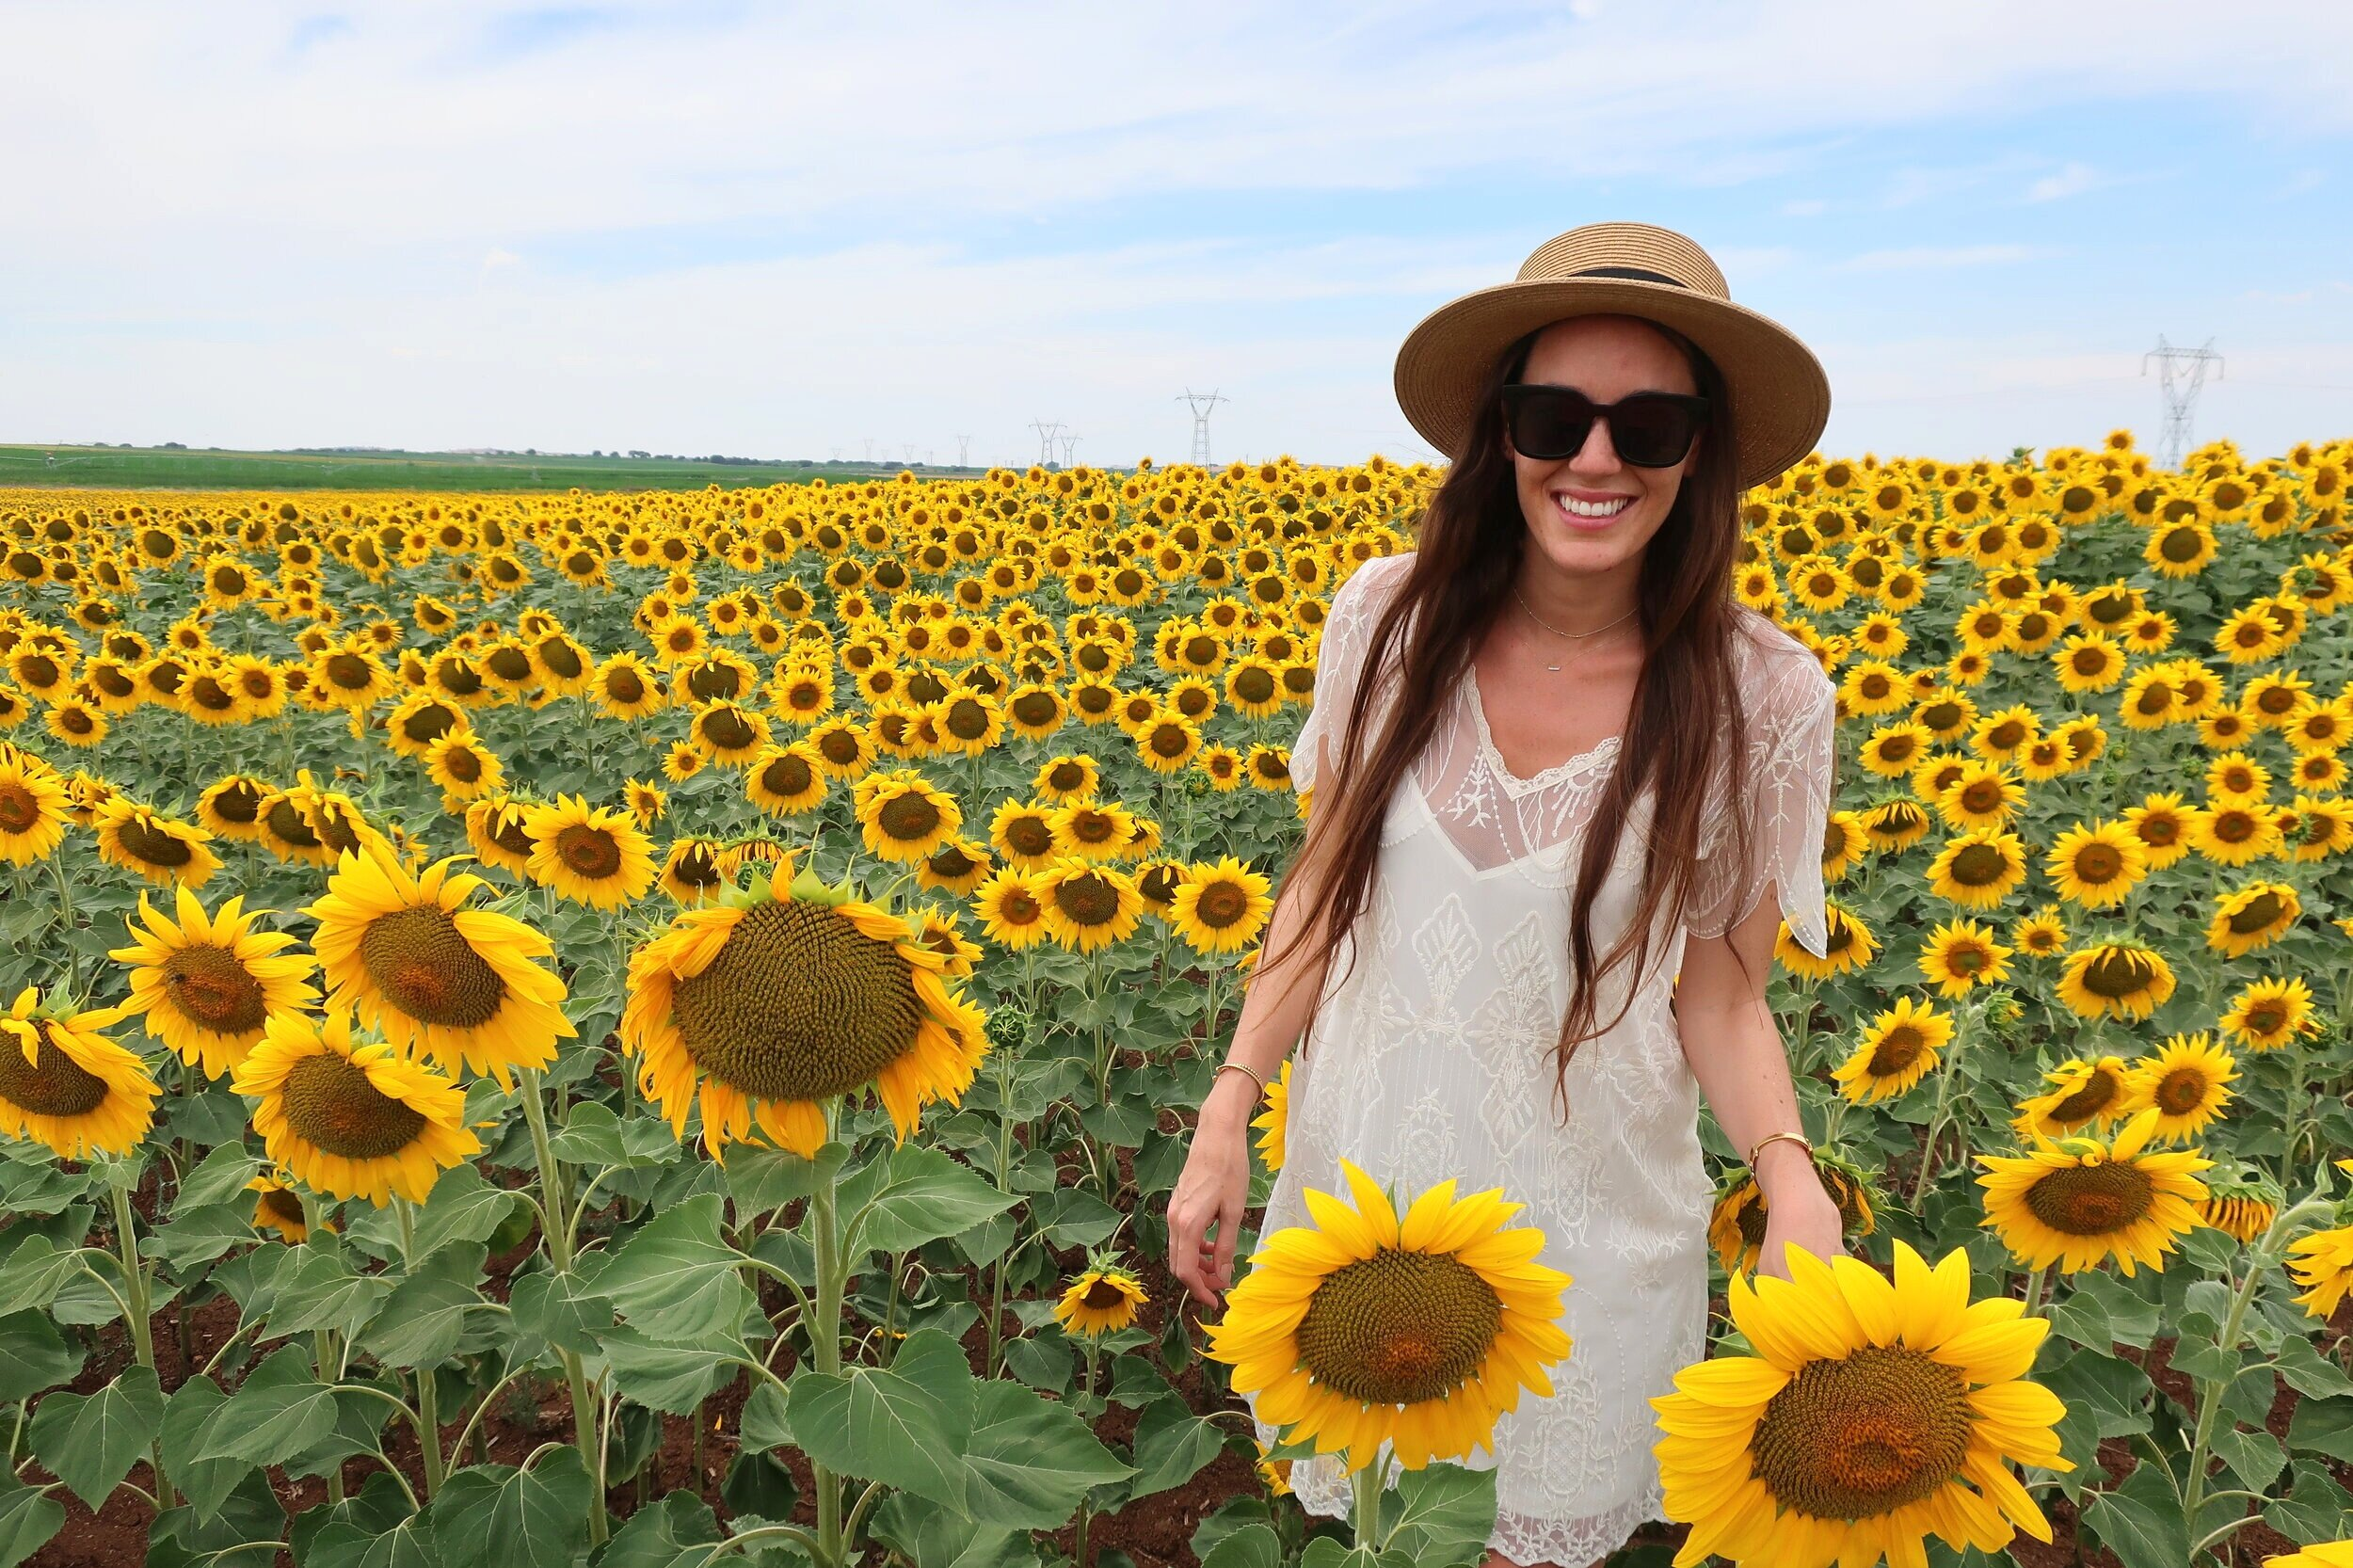 Carina Otero in Beja's Blooming Sunflower Fields